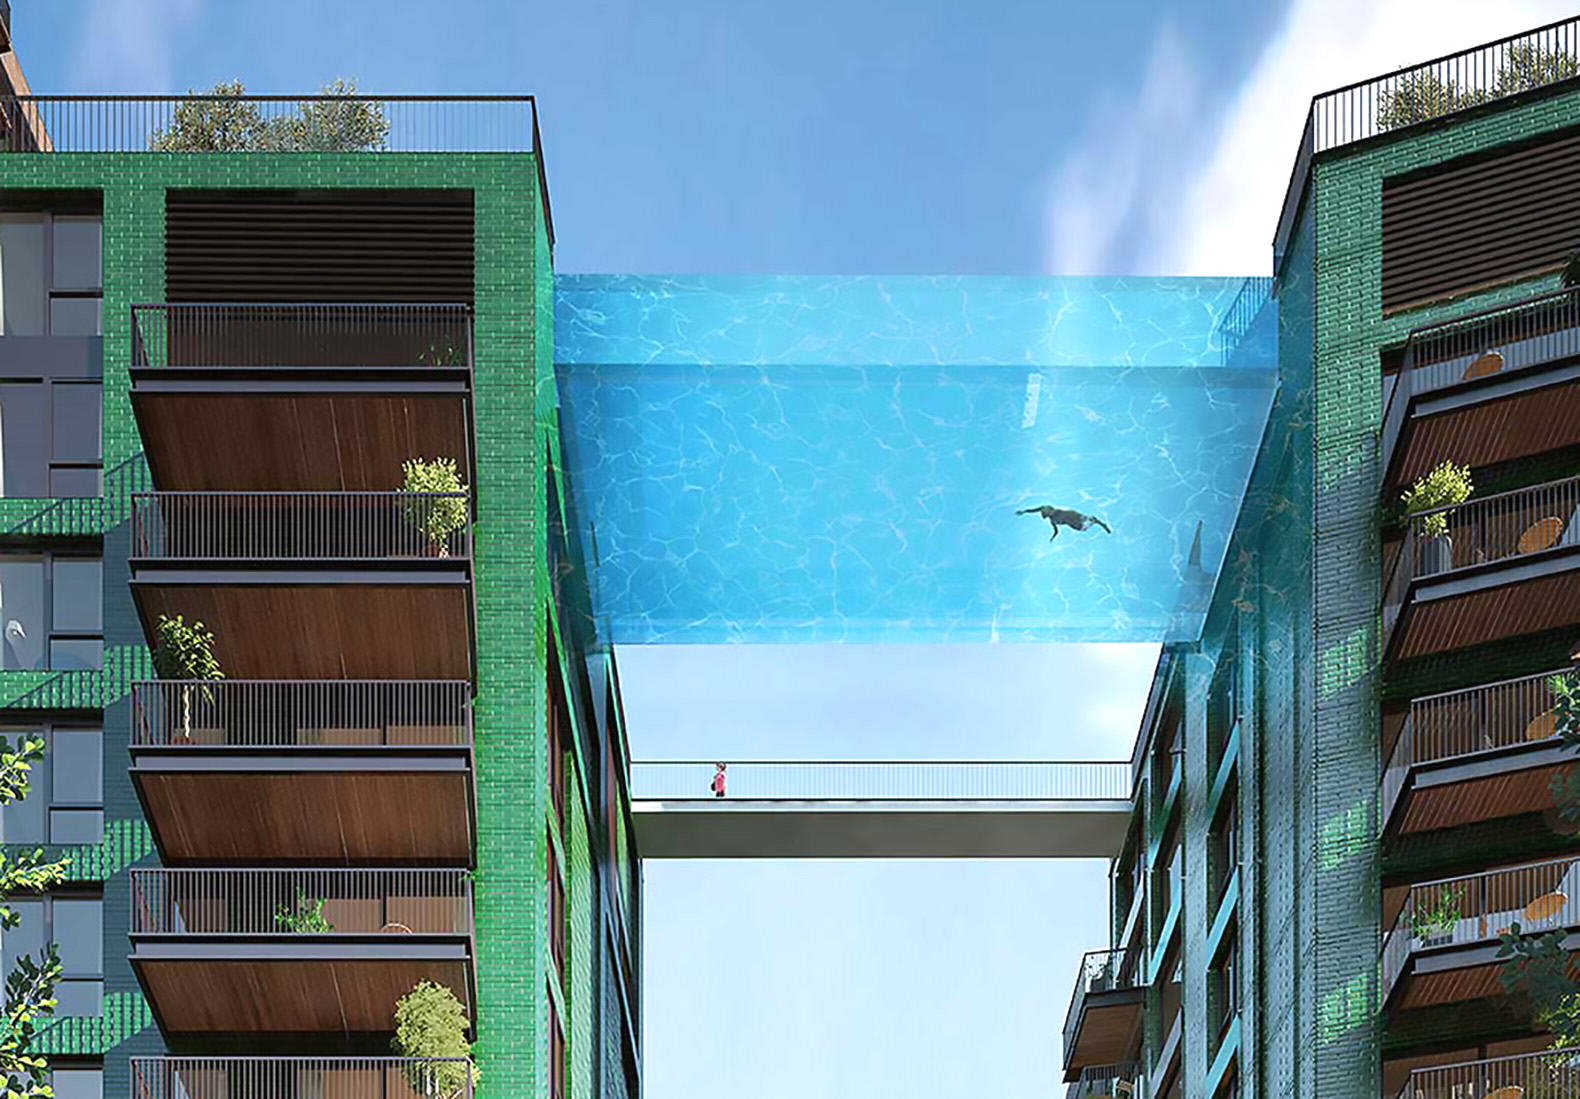 Floating Glass Swimming Pool To Be Built Between Two London Apartments UNILAD inhabitat4